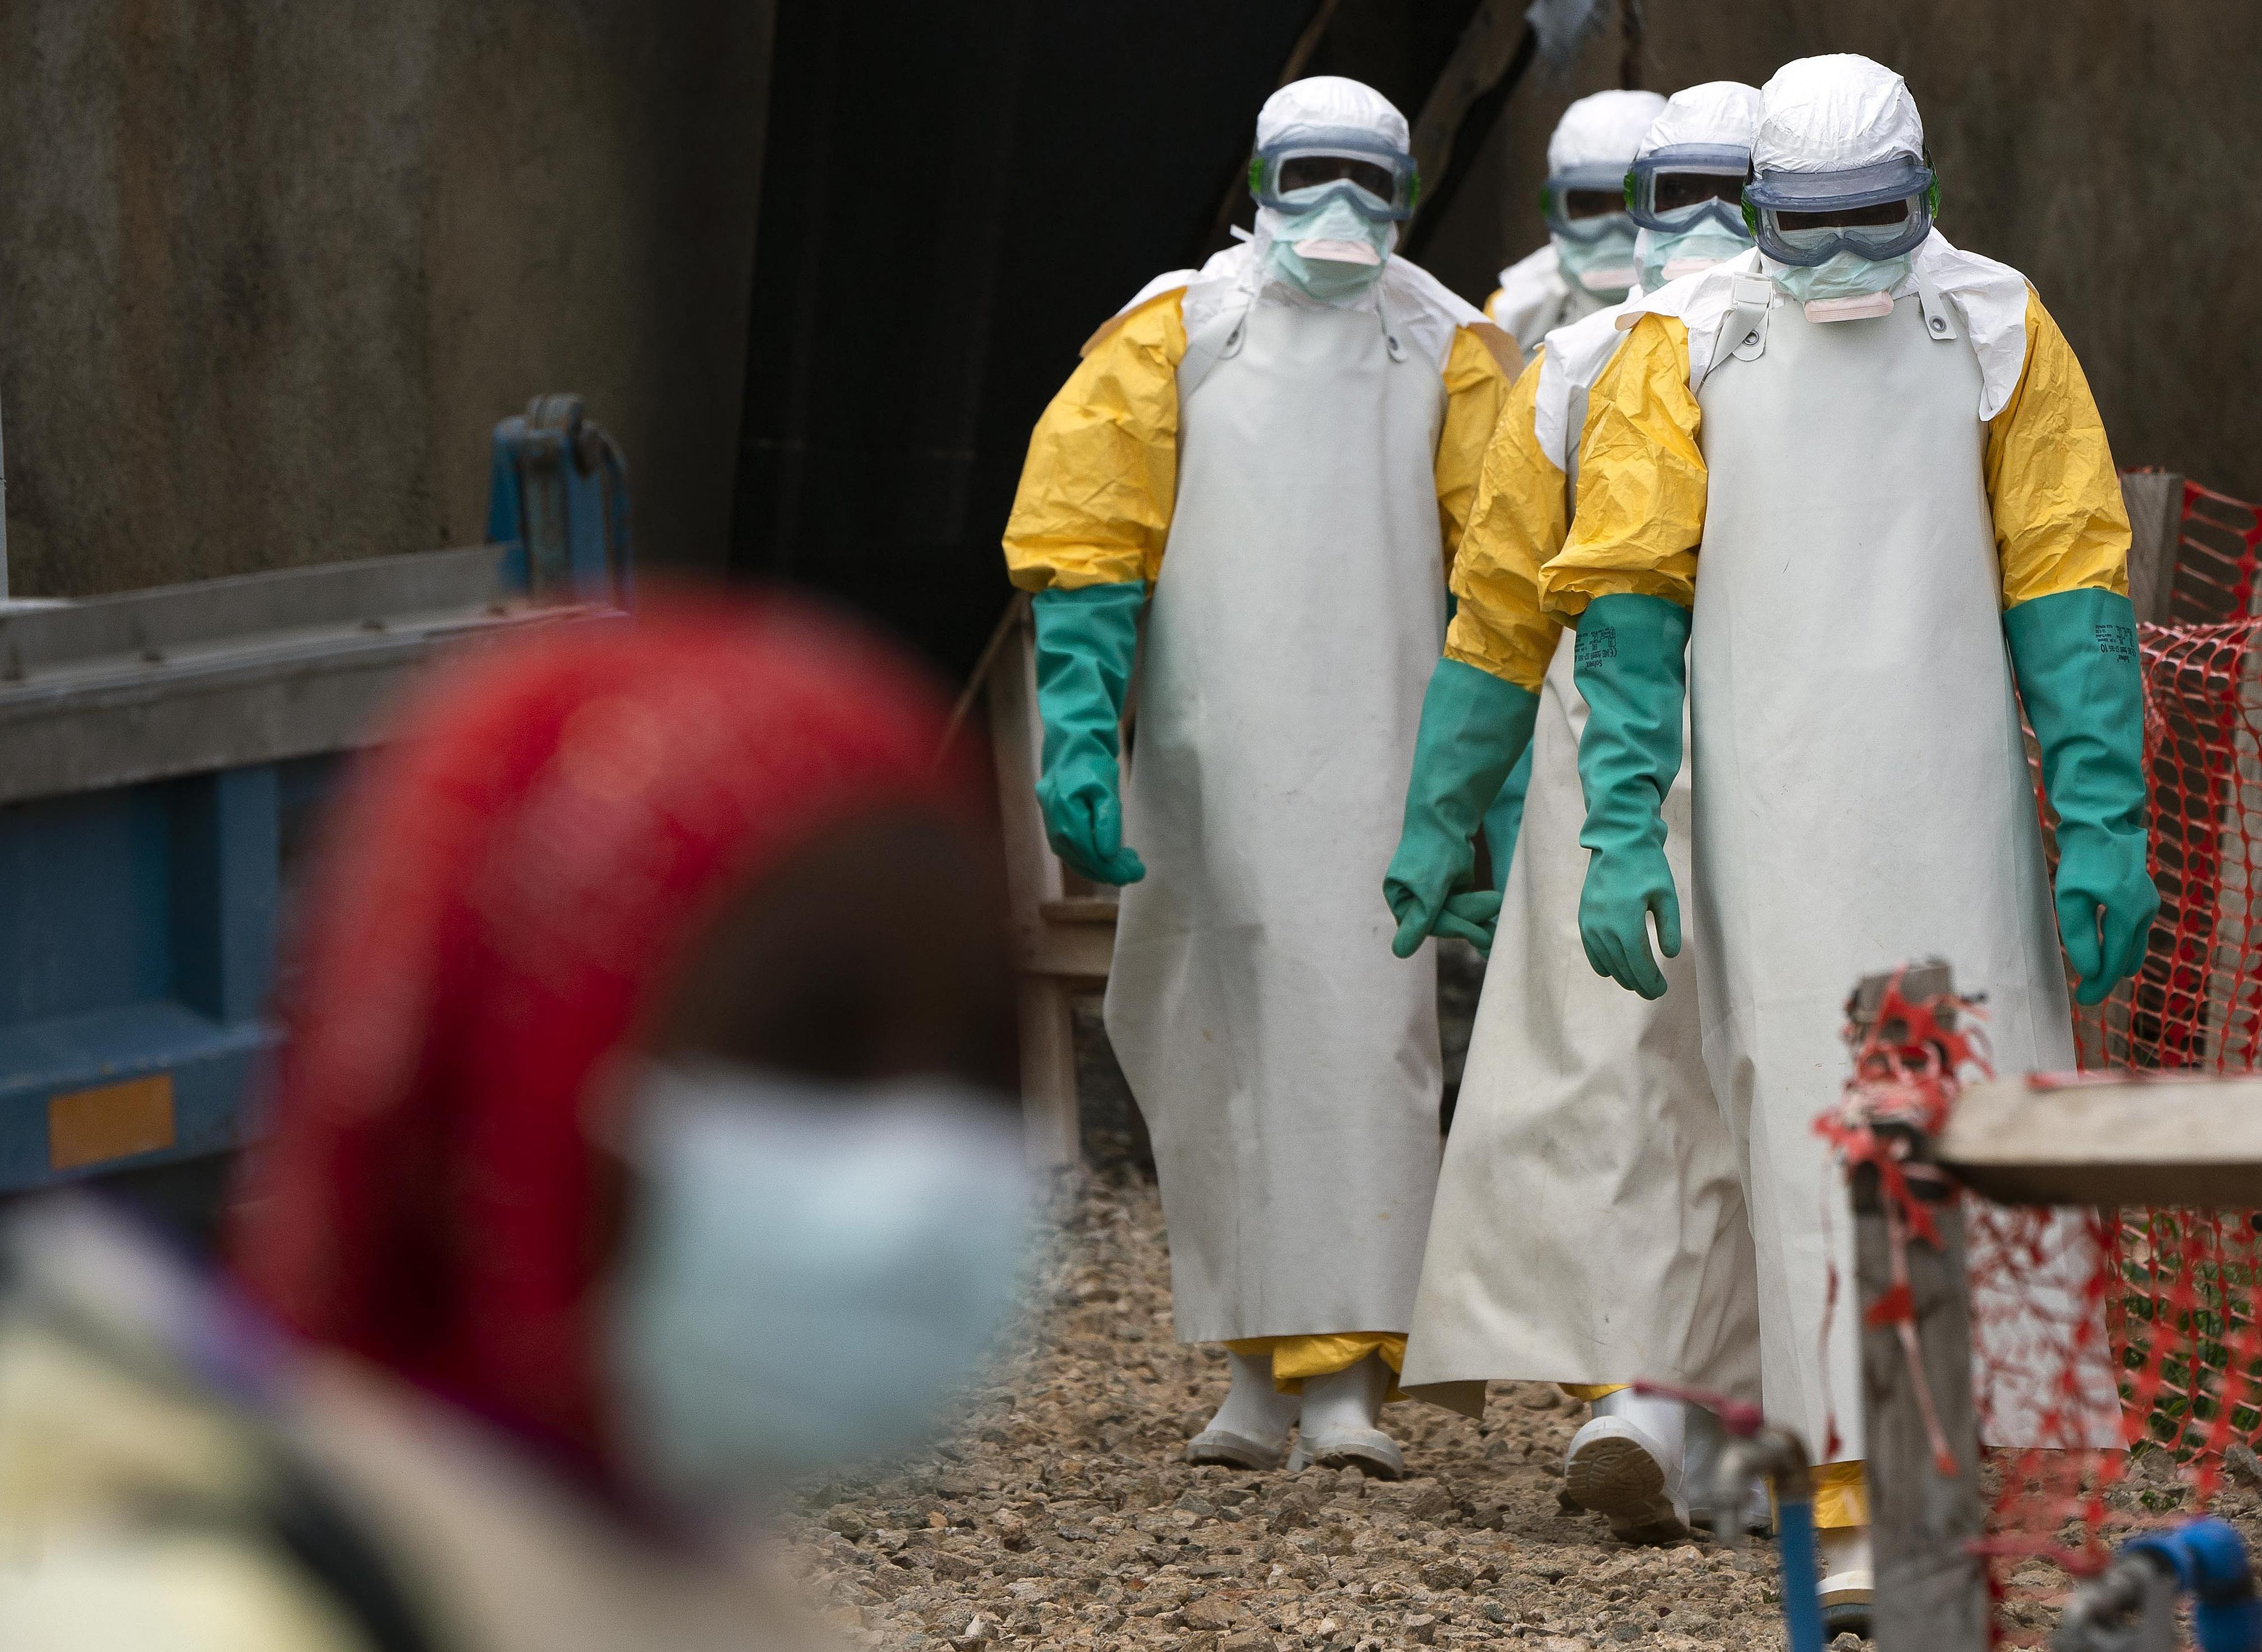 The Guardian view on Ebola in the DRC: help needed – and dialogue too